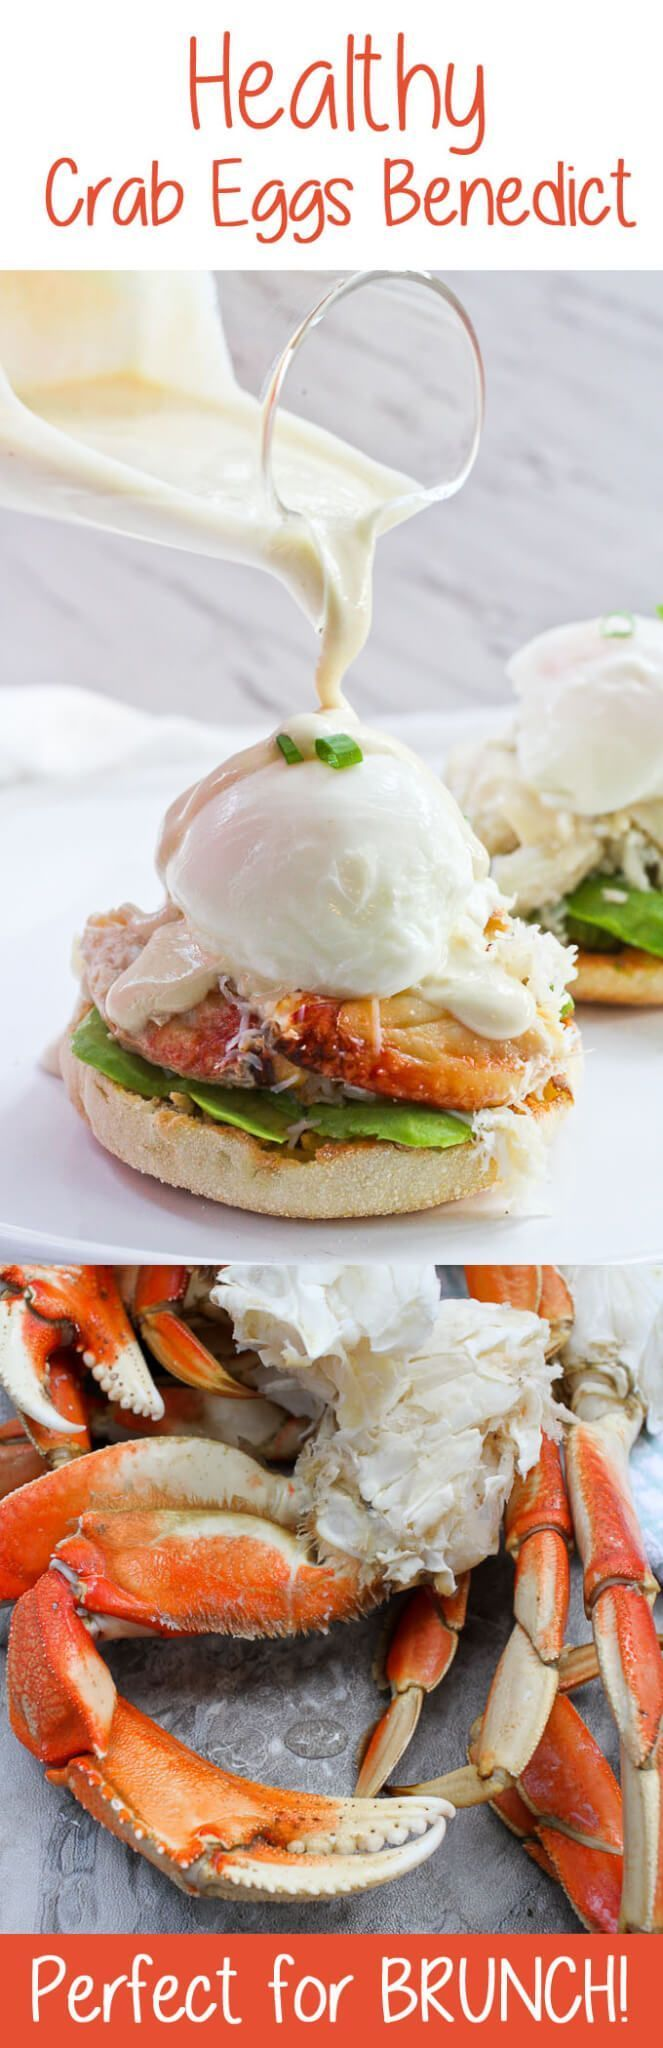 #ad This Healthy Crab Eggs Benedict is made with Dungeness crab legs, poached eggs, and a creamy yogurt sauce, and is a lighter take on the breakfast classic! #crablegs #dungenesscrab #healthybreakfast #seafood #healthyeggsbenedict